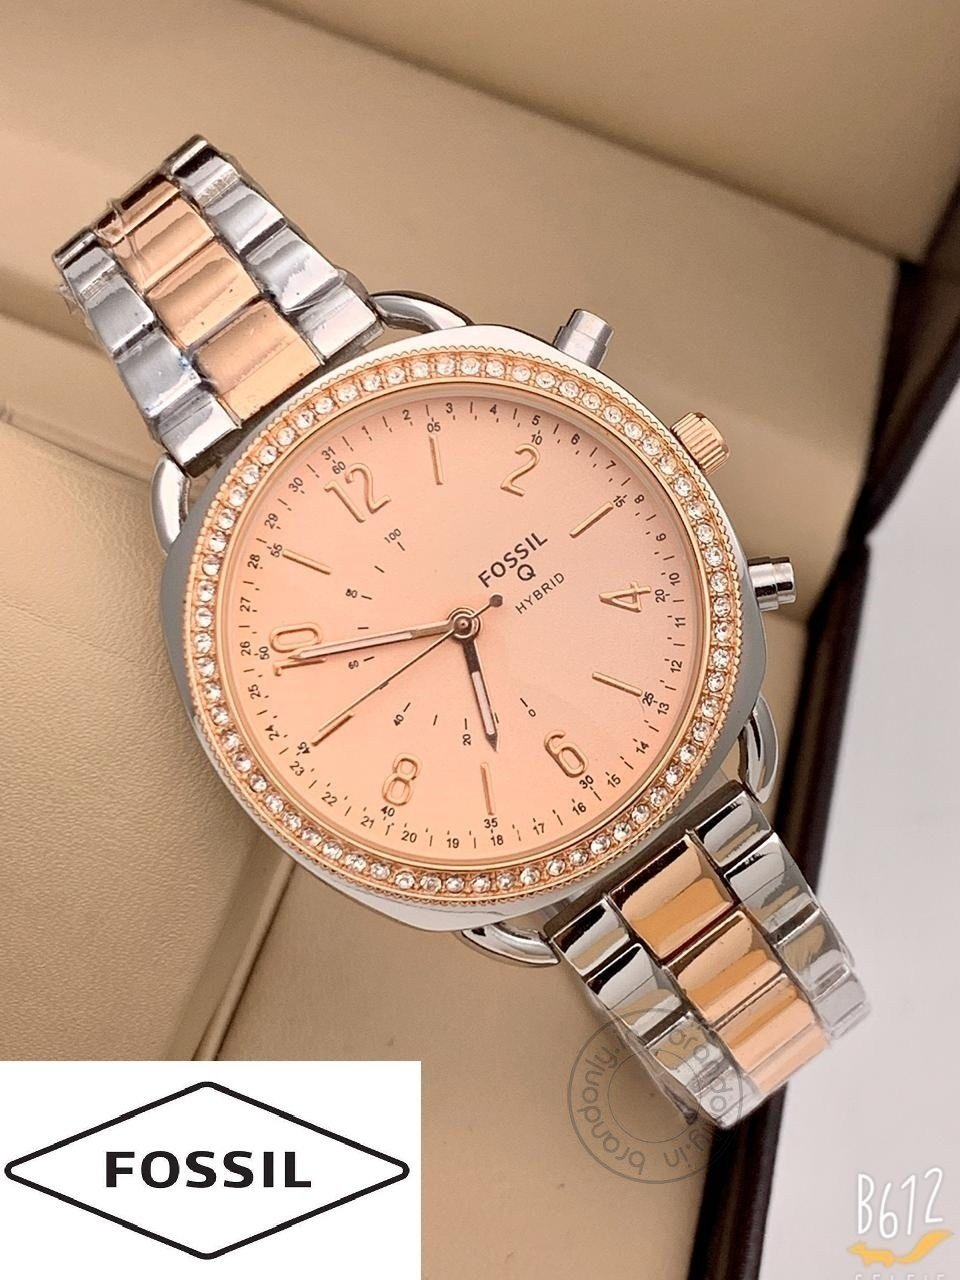 Fossil Q Hybrid Women's Watch For Girl Or Woman Es543 Rose Gold Dial Metal Silver Gold Strap - Best Gift